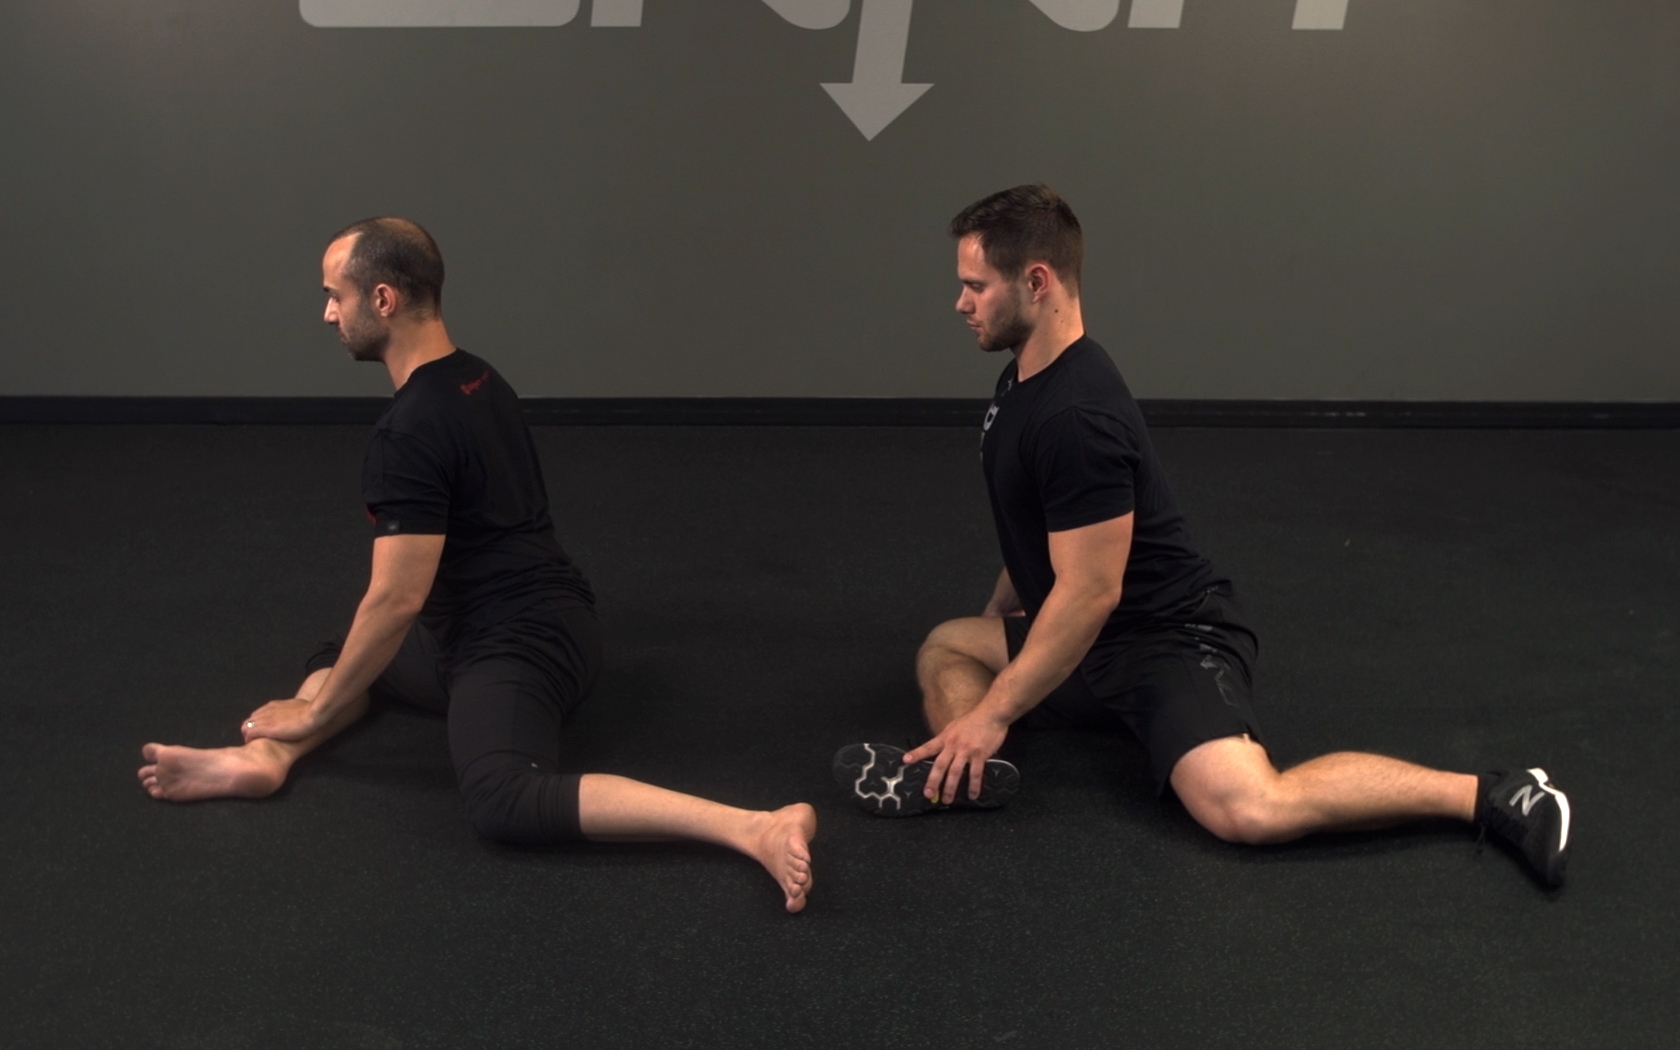 two men show 90/90 exercise for hip joint flexibility.